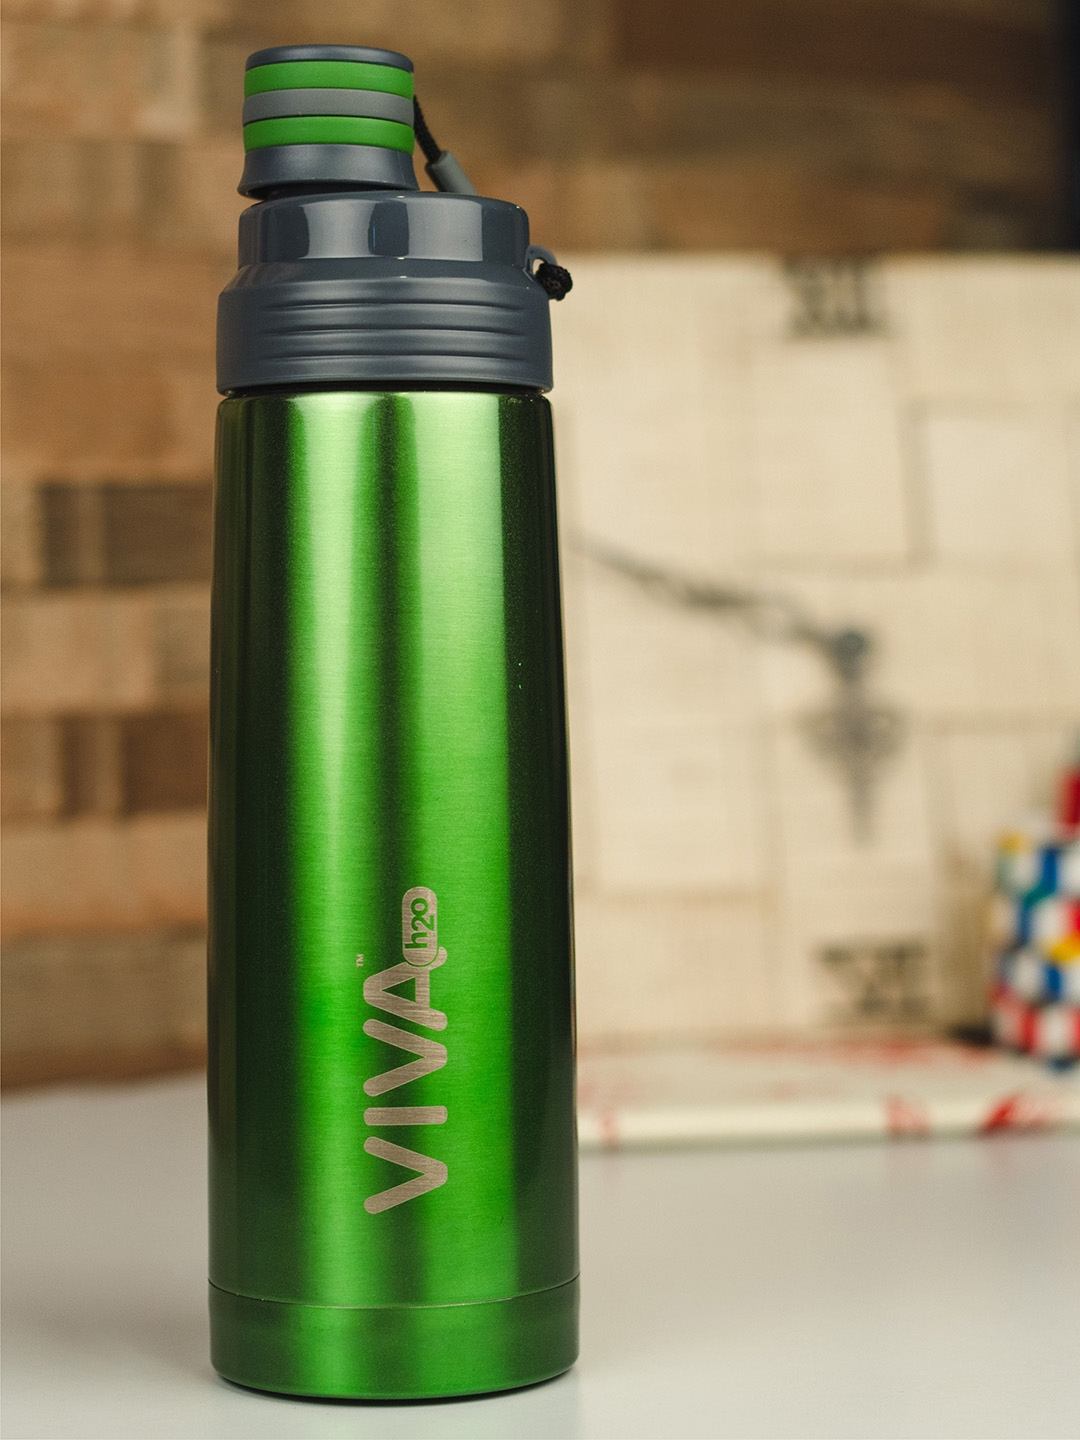 VIVA h2o Unisex Green Stainless Steel Vacuum Insulated Water Bottle 800 ml